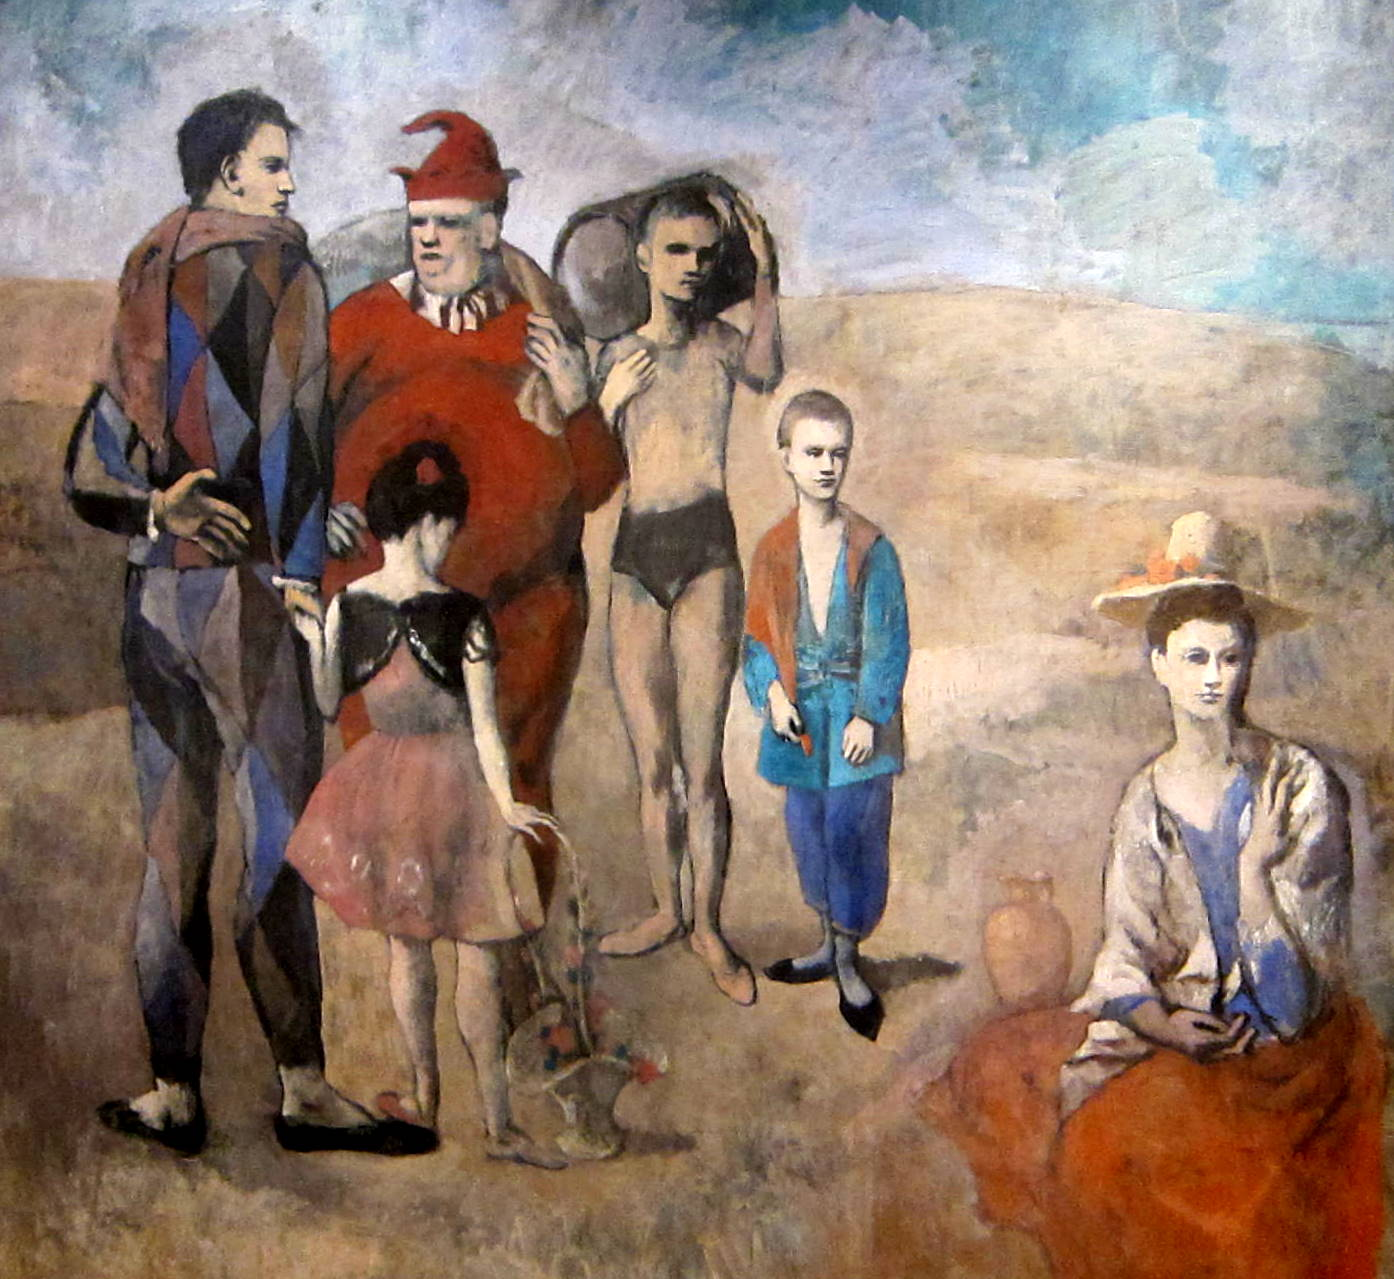 Famille de saltimbanques, by Picasso